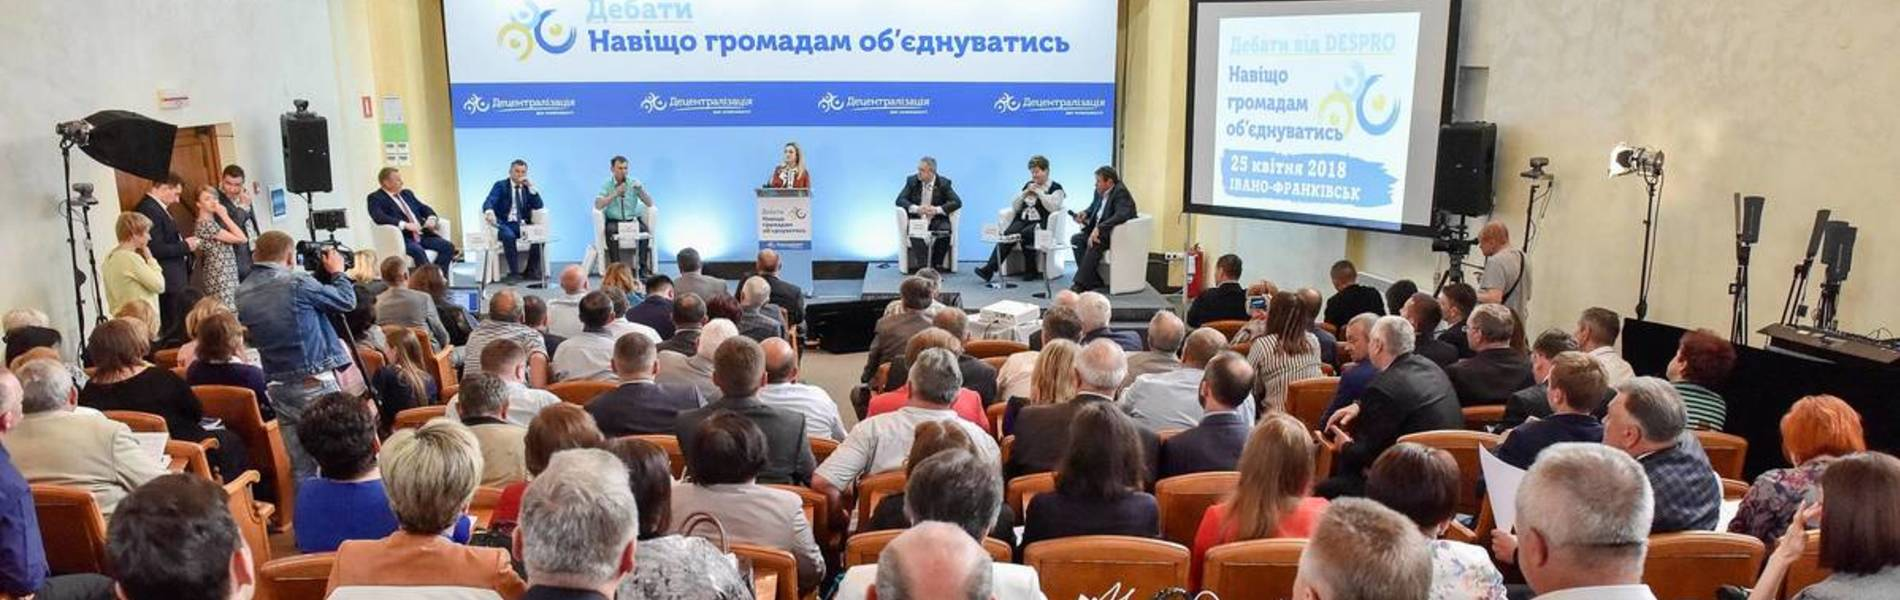 """Pointwise"" off-target blows: arguments of opponents of hromadas' amalgamation"